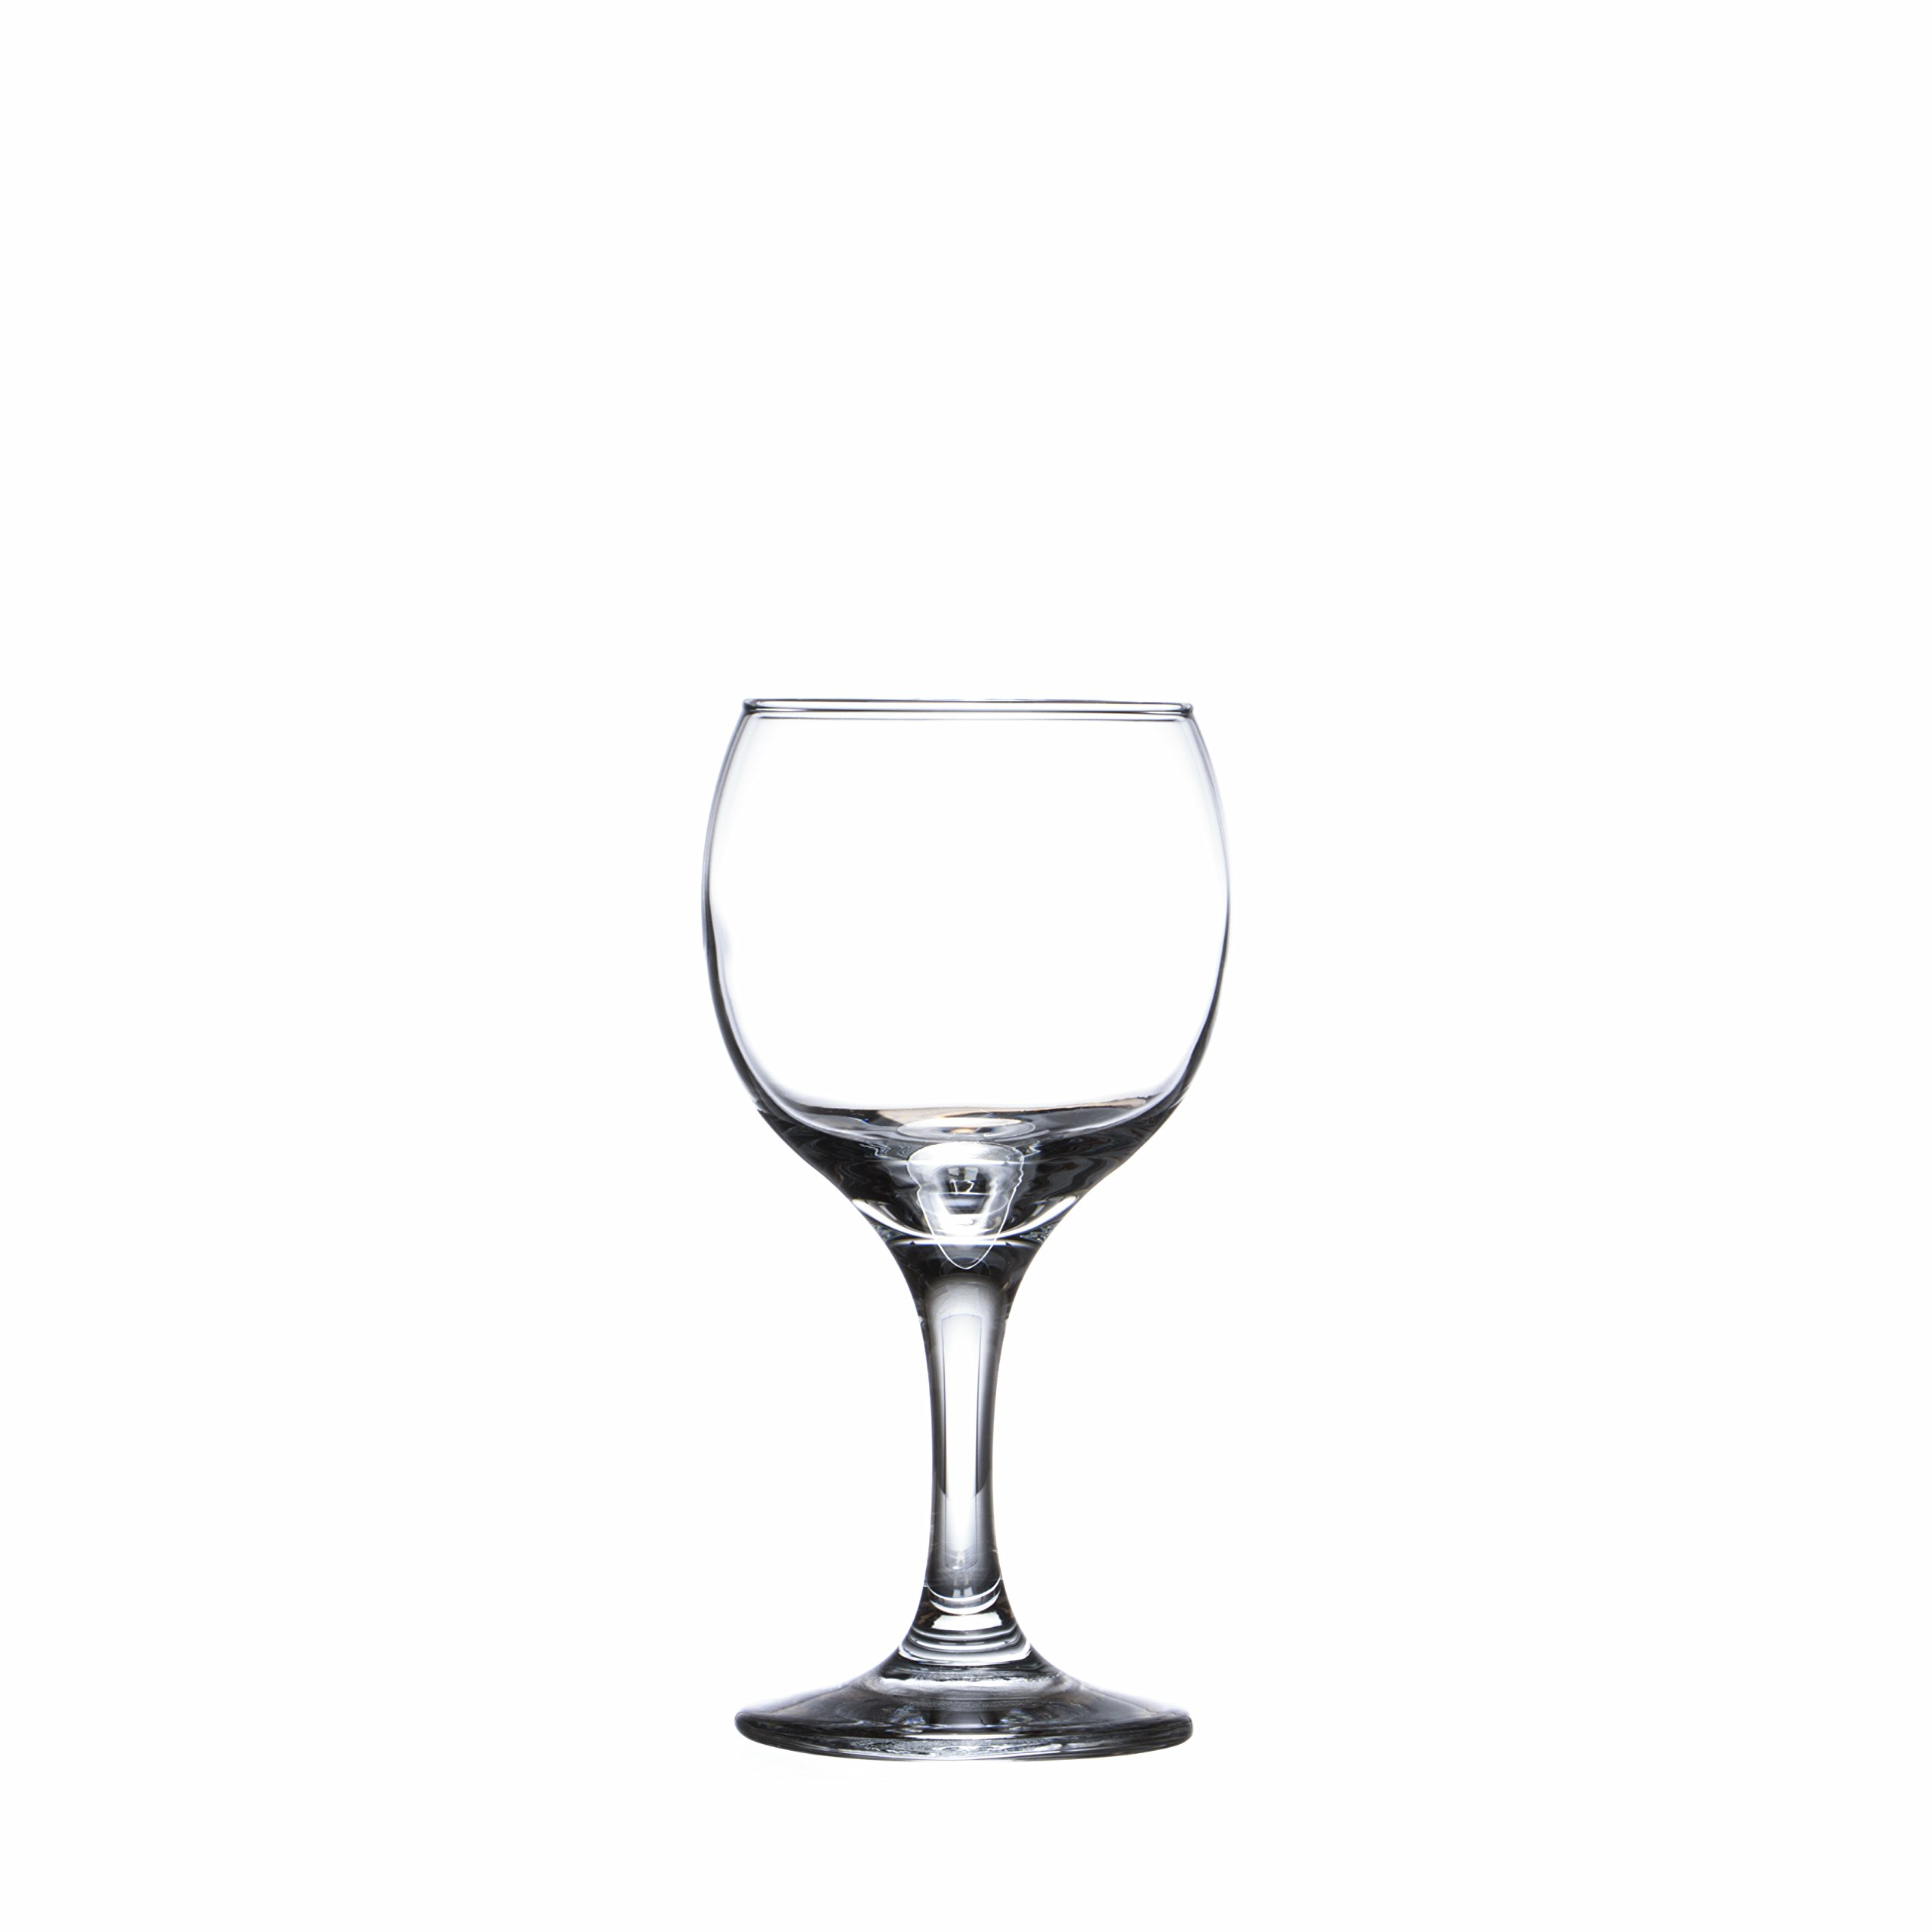 BISTRO 12-piece Wine Glasses Set (in 3 size), White, Red and Liquor Wine, Restaurant&Bar Quality, Durable Tempered Glass, Heavy Base, t.m. Pasabache (7 1/2 oz) by Pasabache (Image #6)